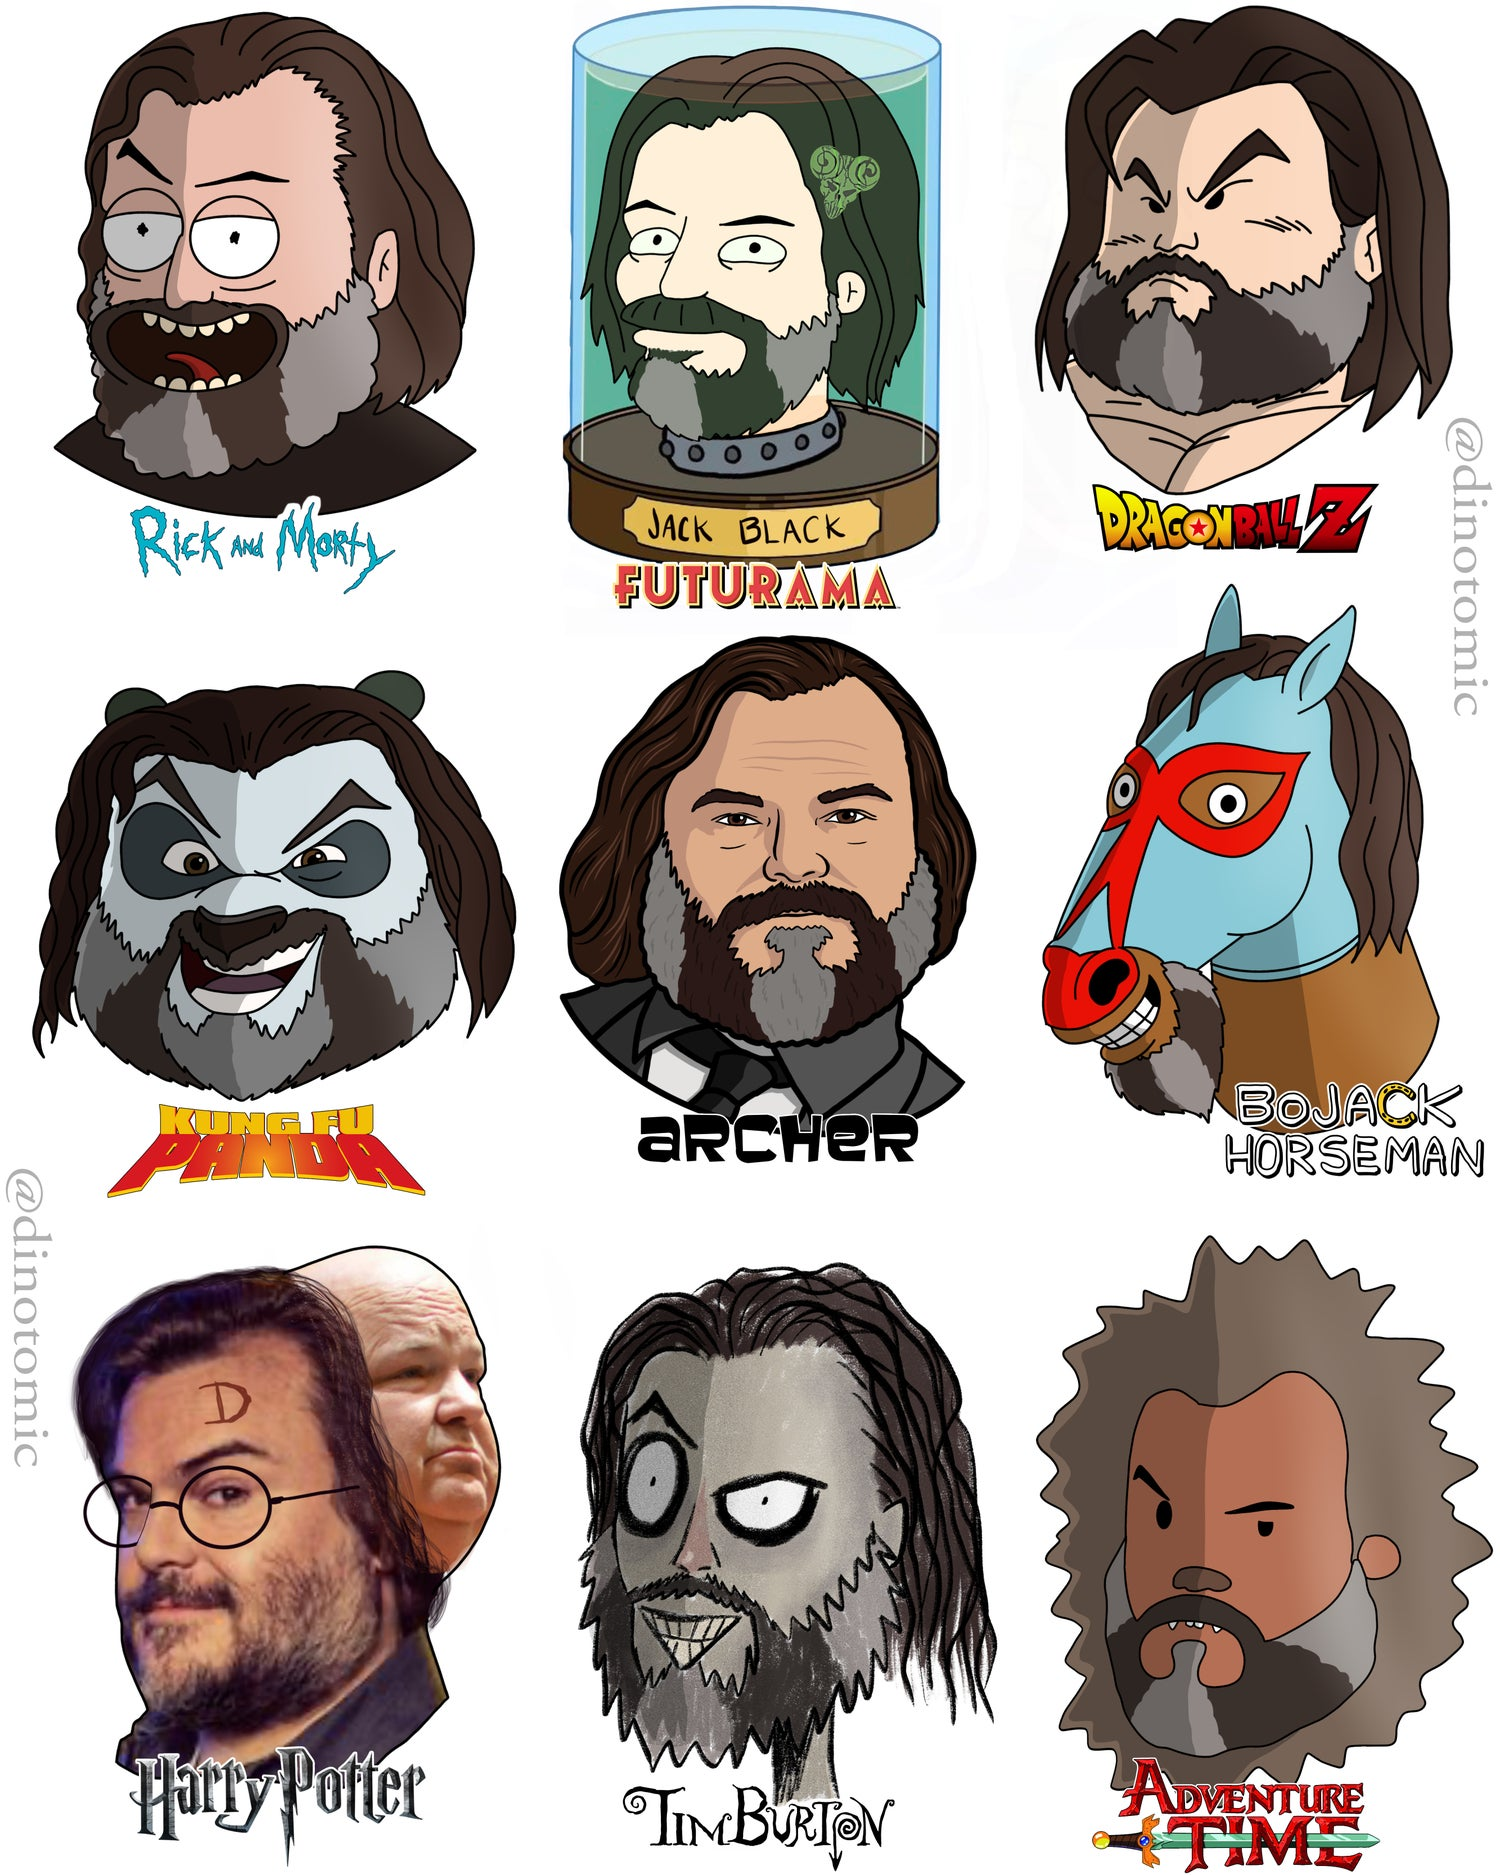 Image of #214 Jack Black drawn in different styles